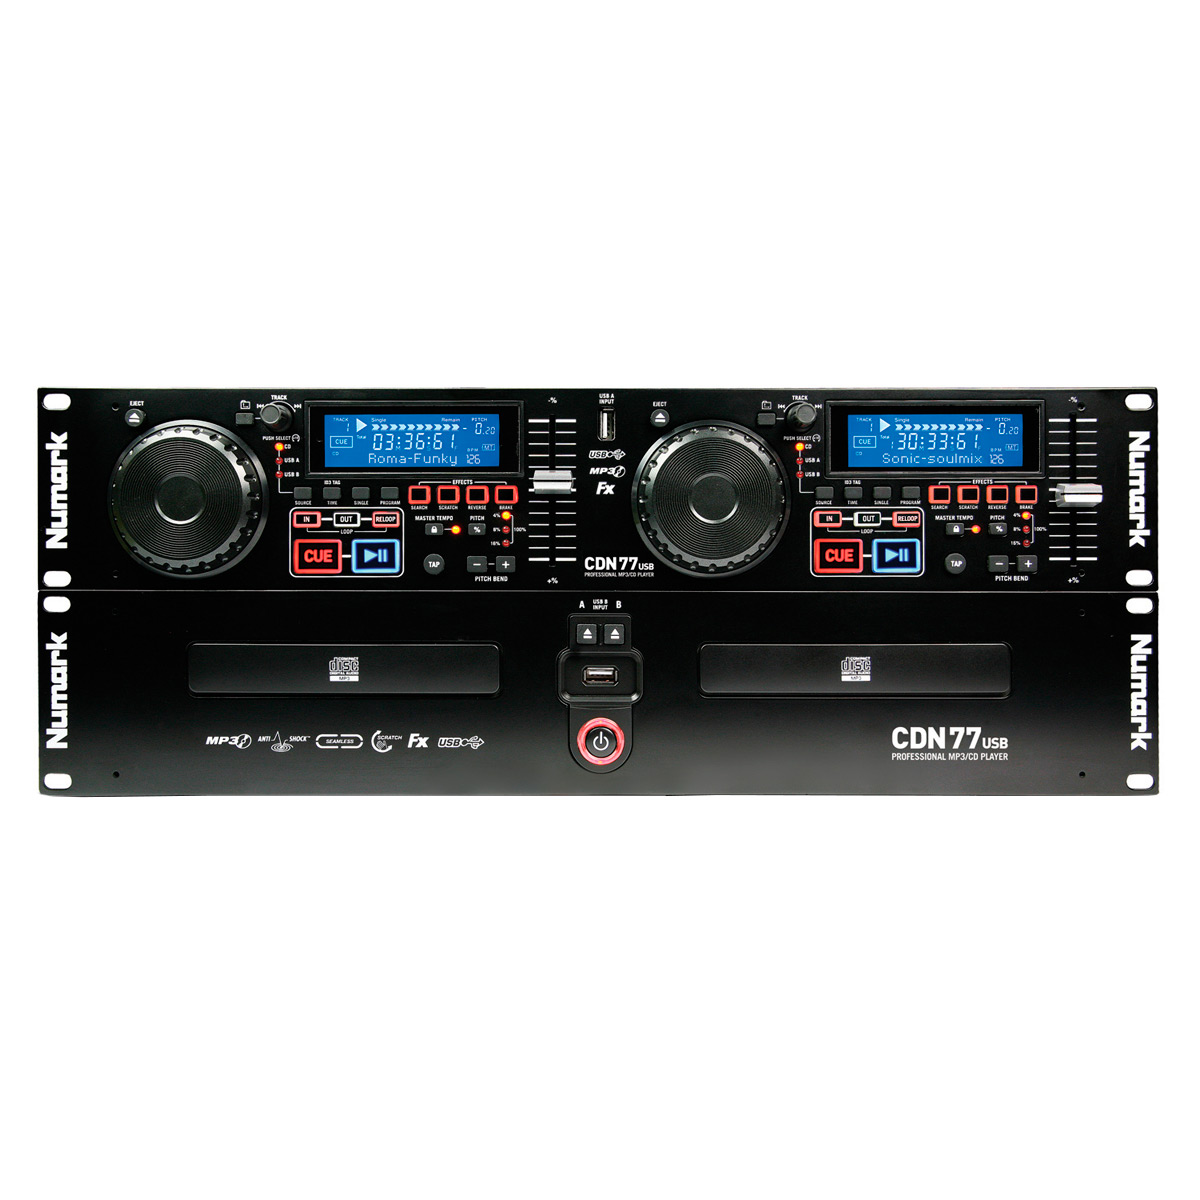 CDN77USB - CDJ Player Duplo c/ USB CDN 77 USB - Numark